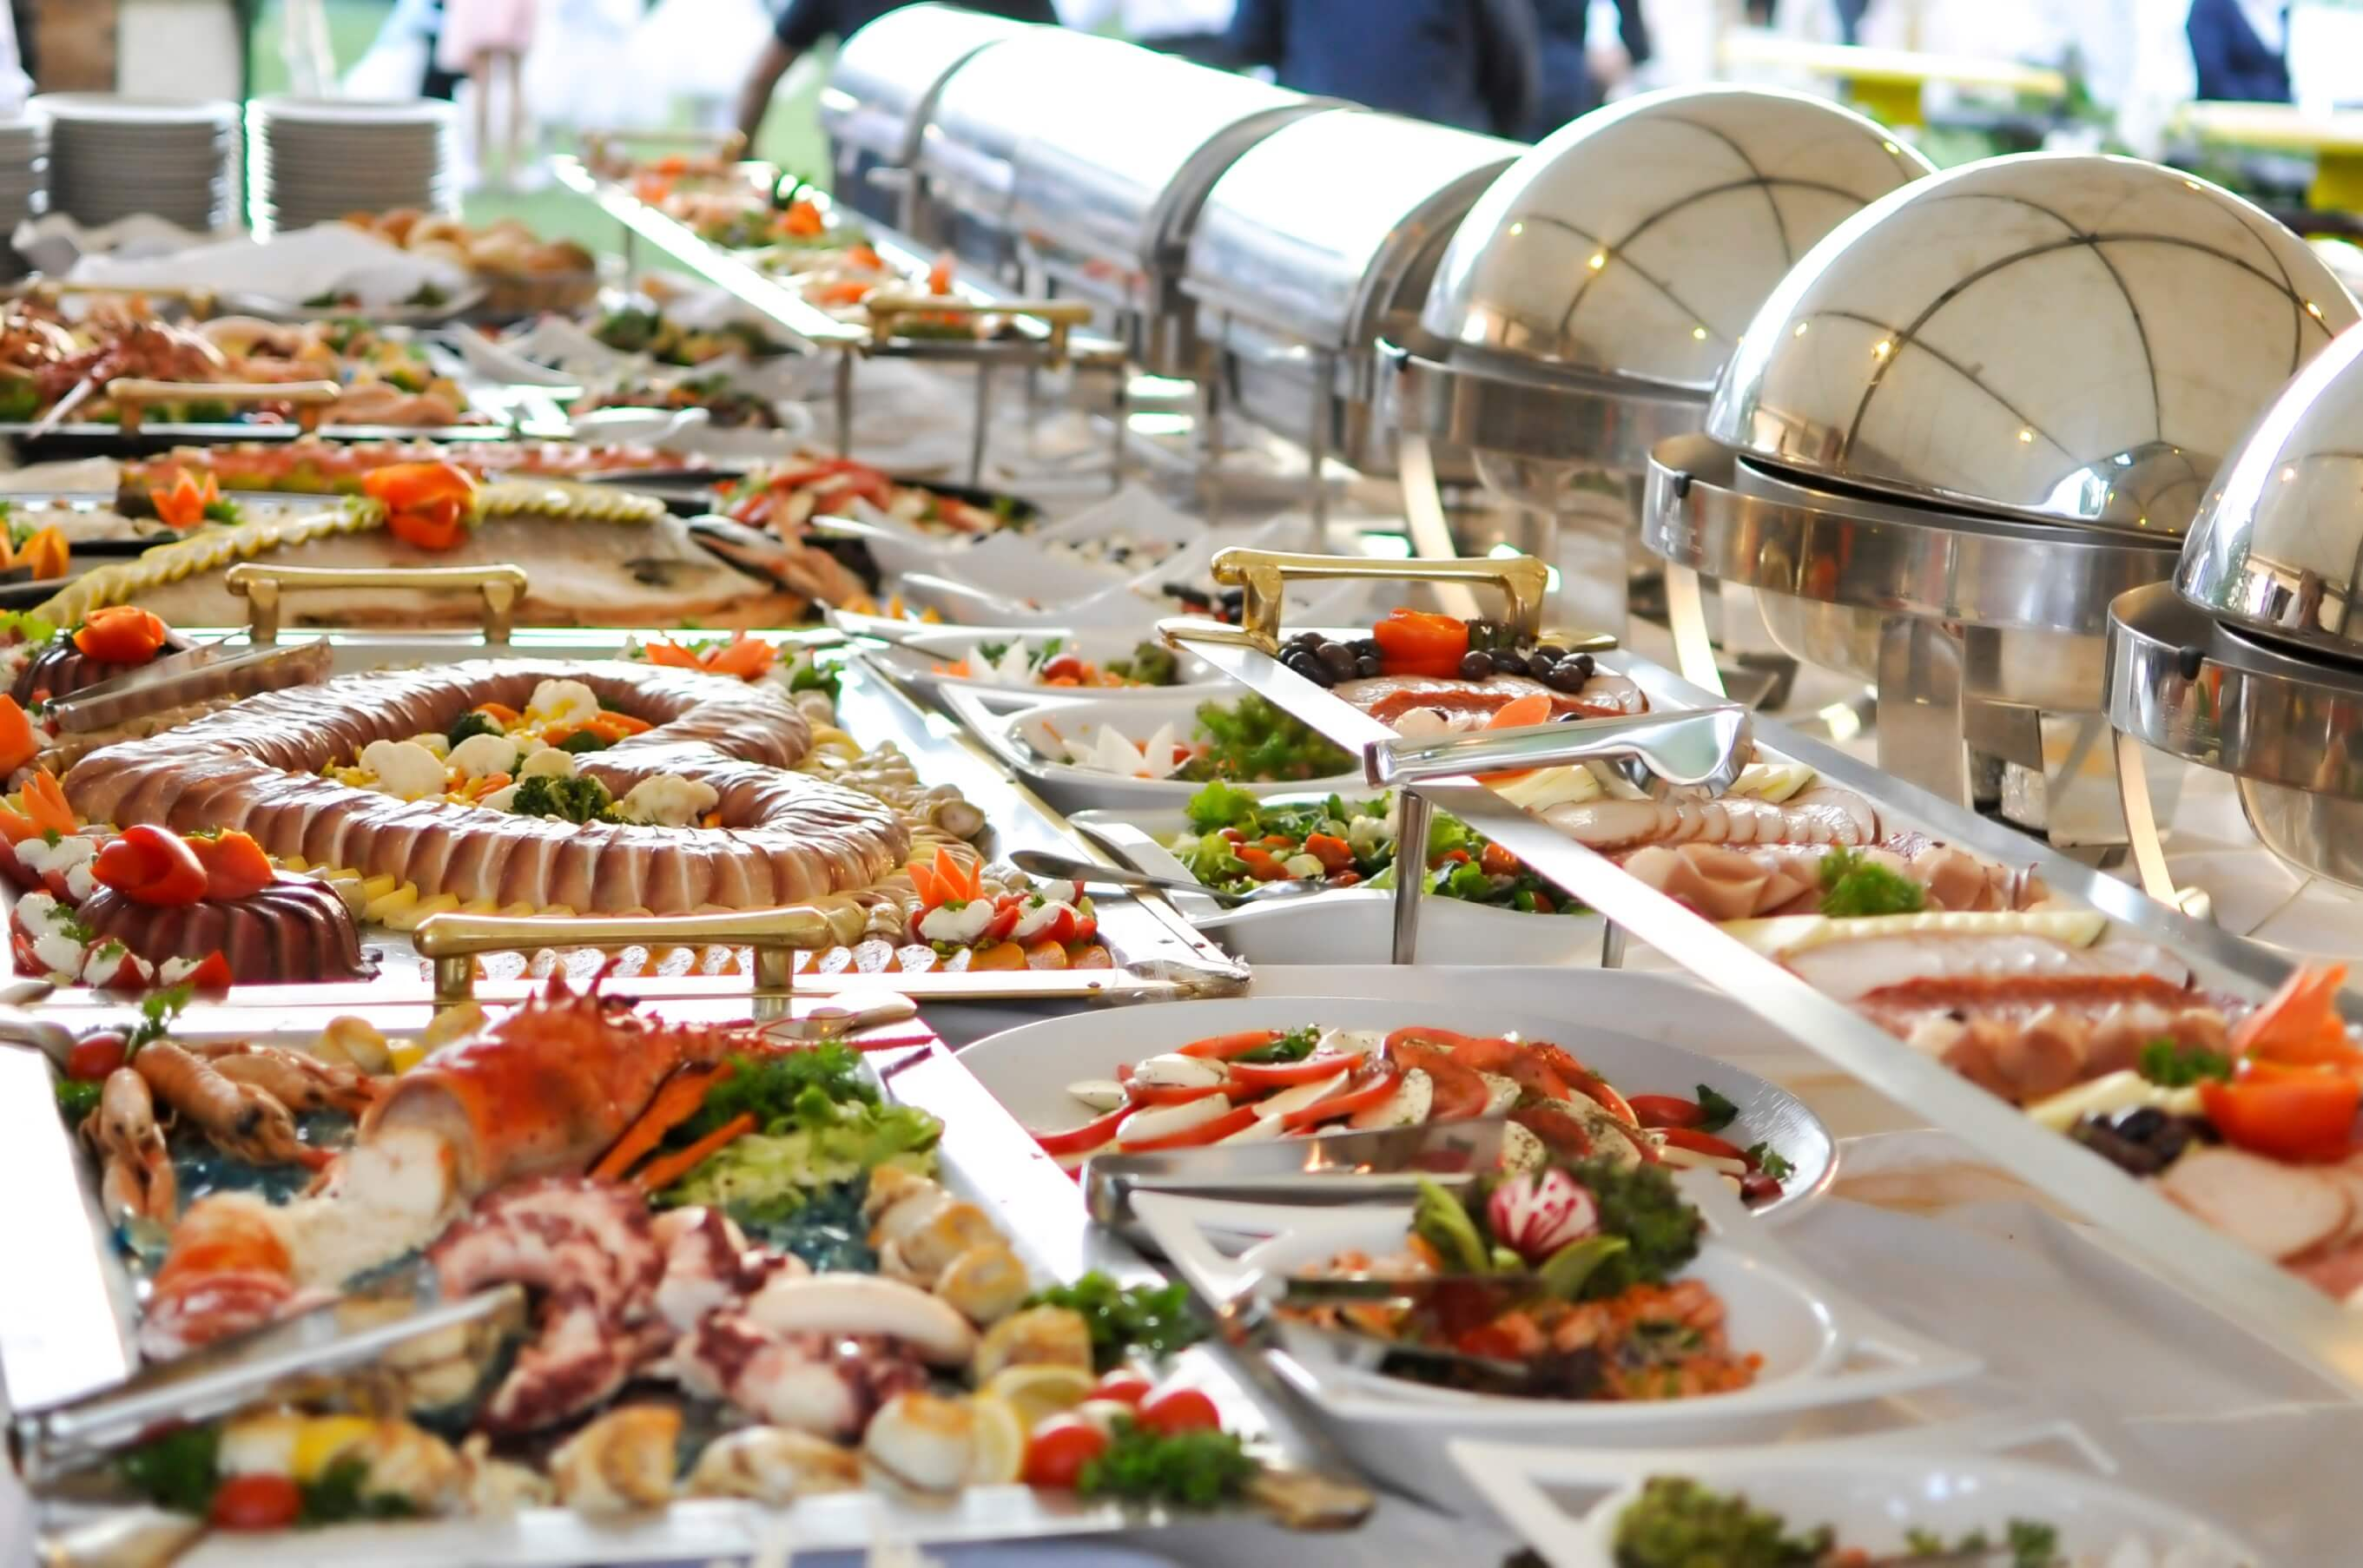 Catering-buffet.jpg